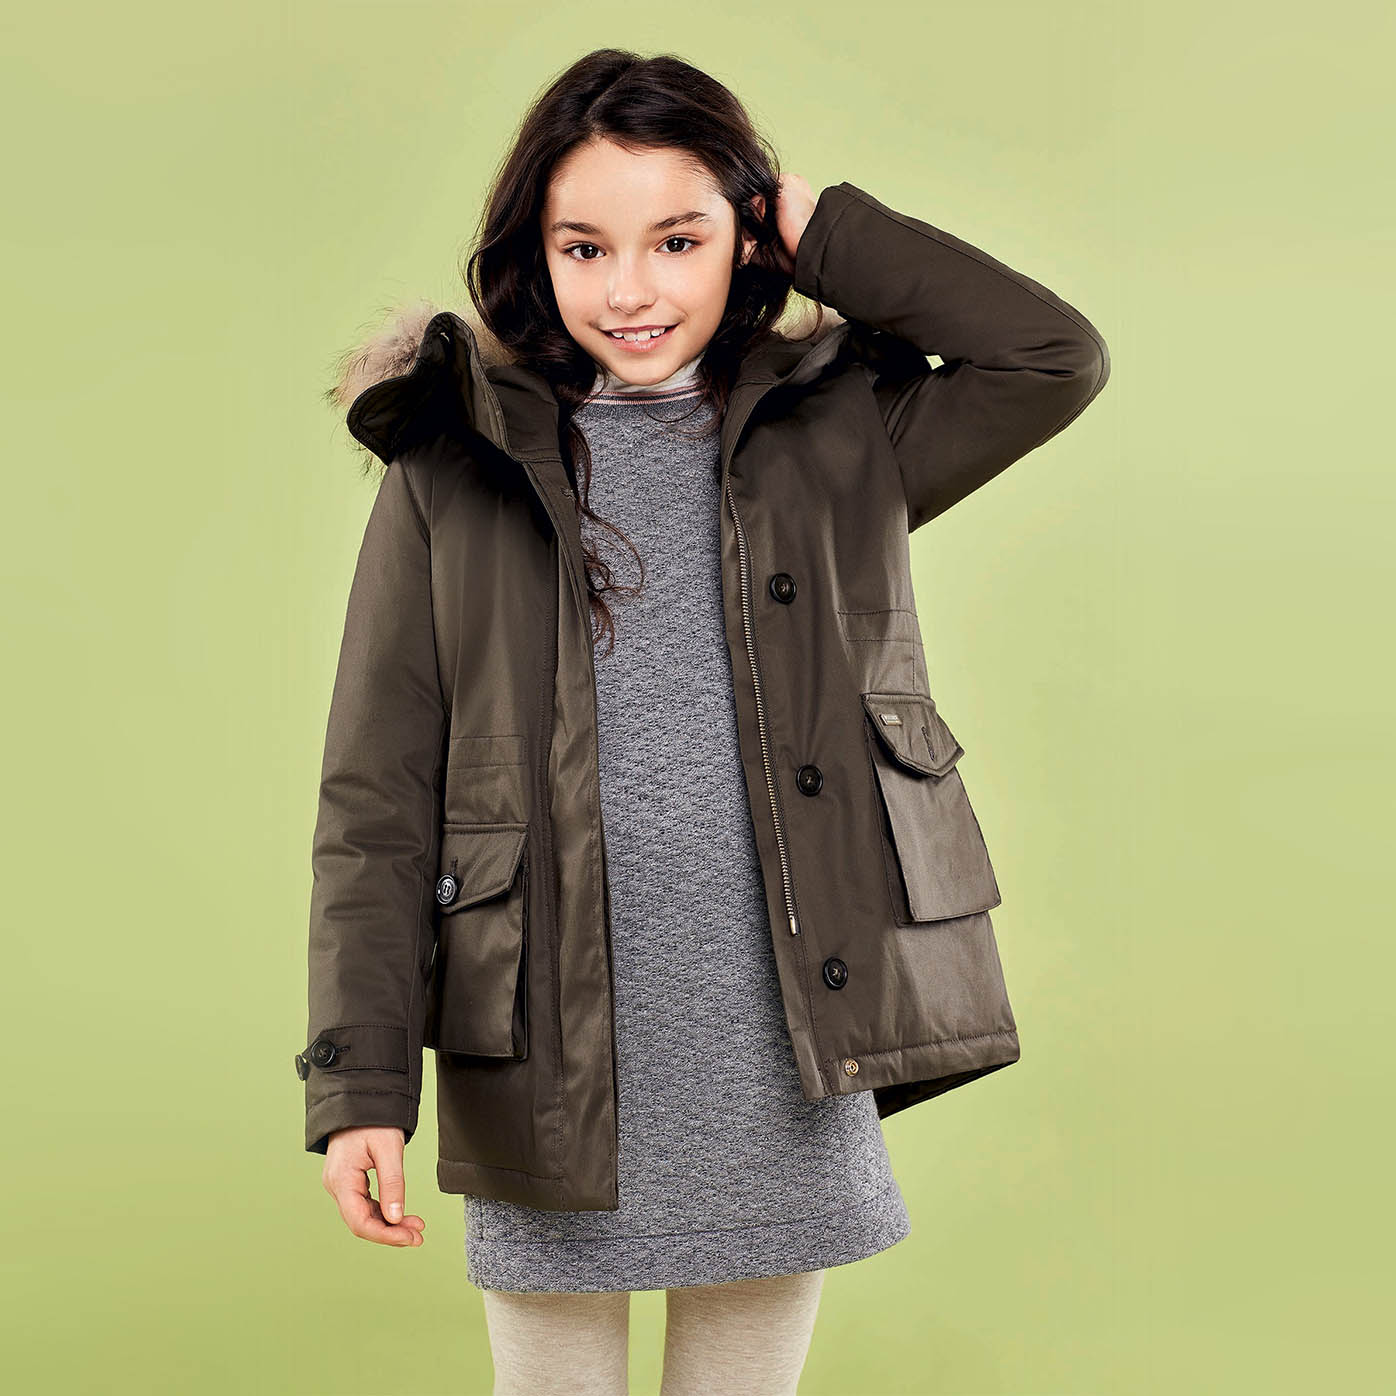 low priced faed3 7a1fe Collezione Bambini Autunno Inverno 17 – Woolrich stories